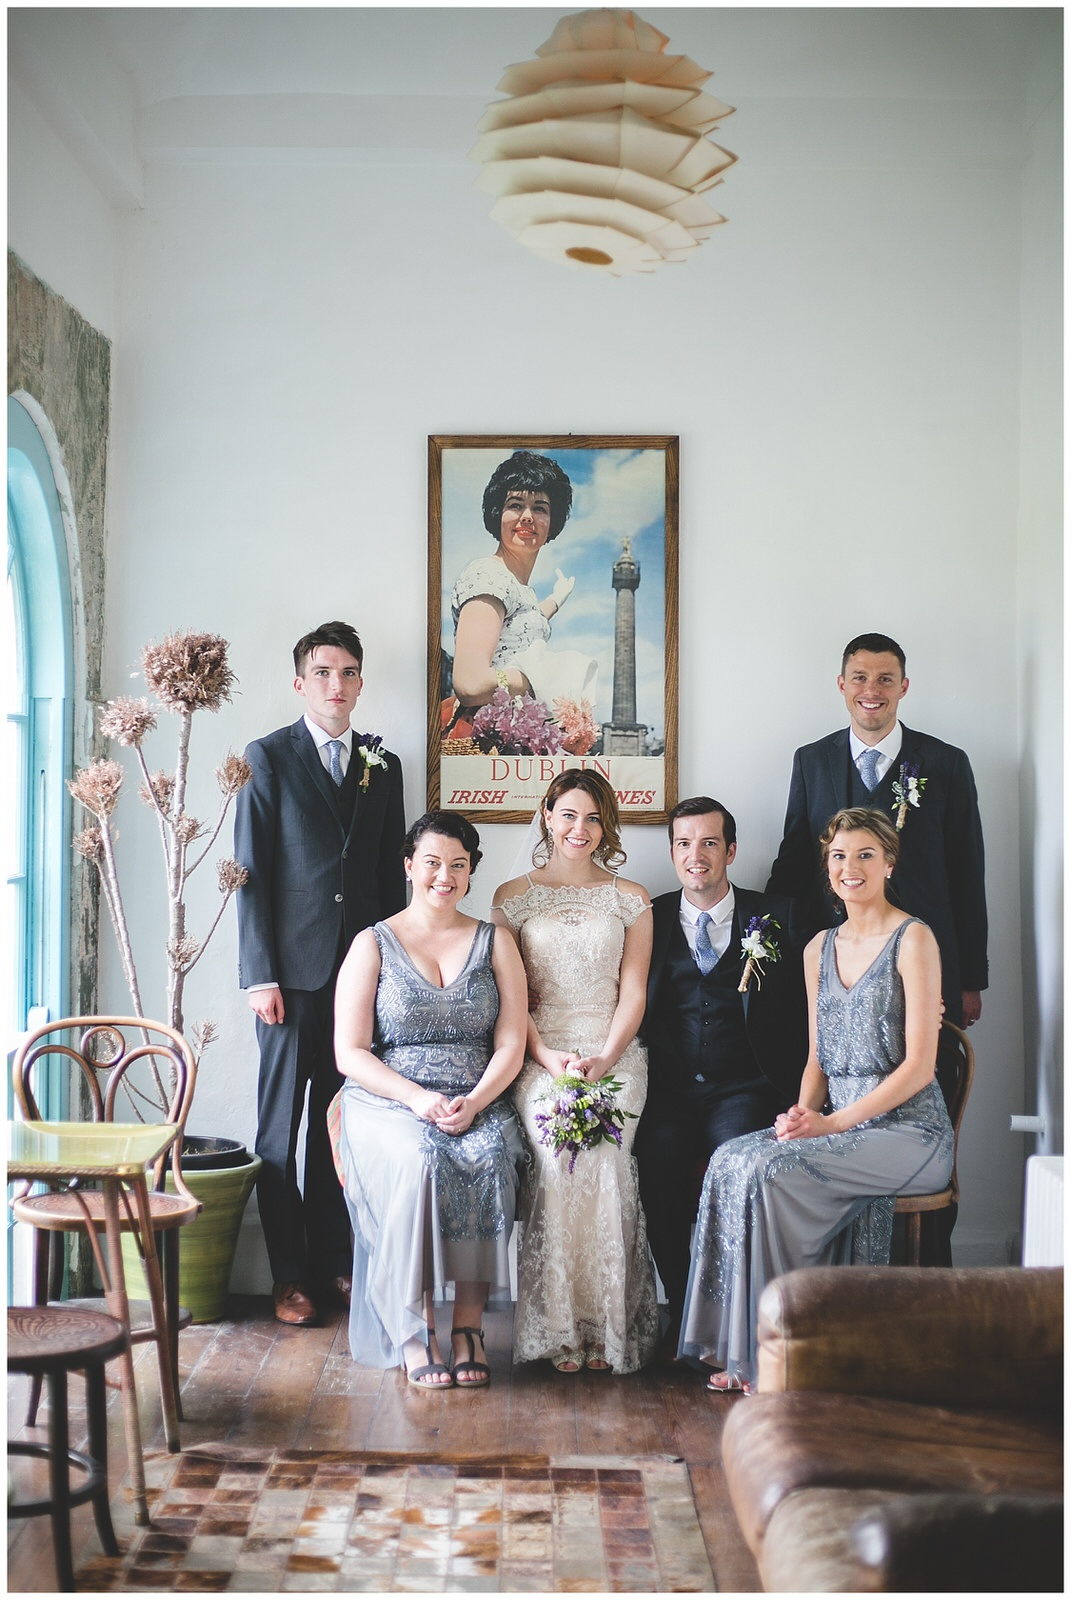 Wild things wed - wedding portraits in bellinter house funky interiors